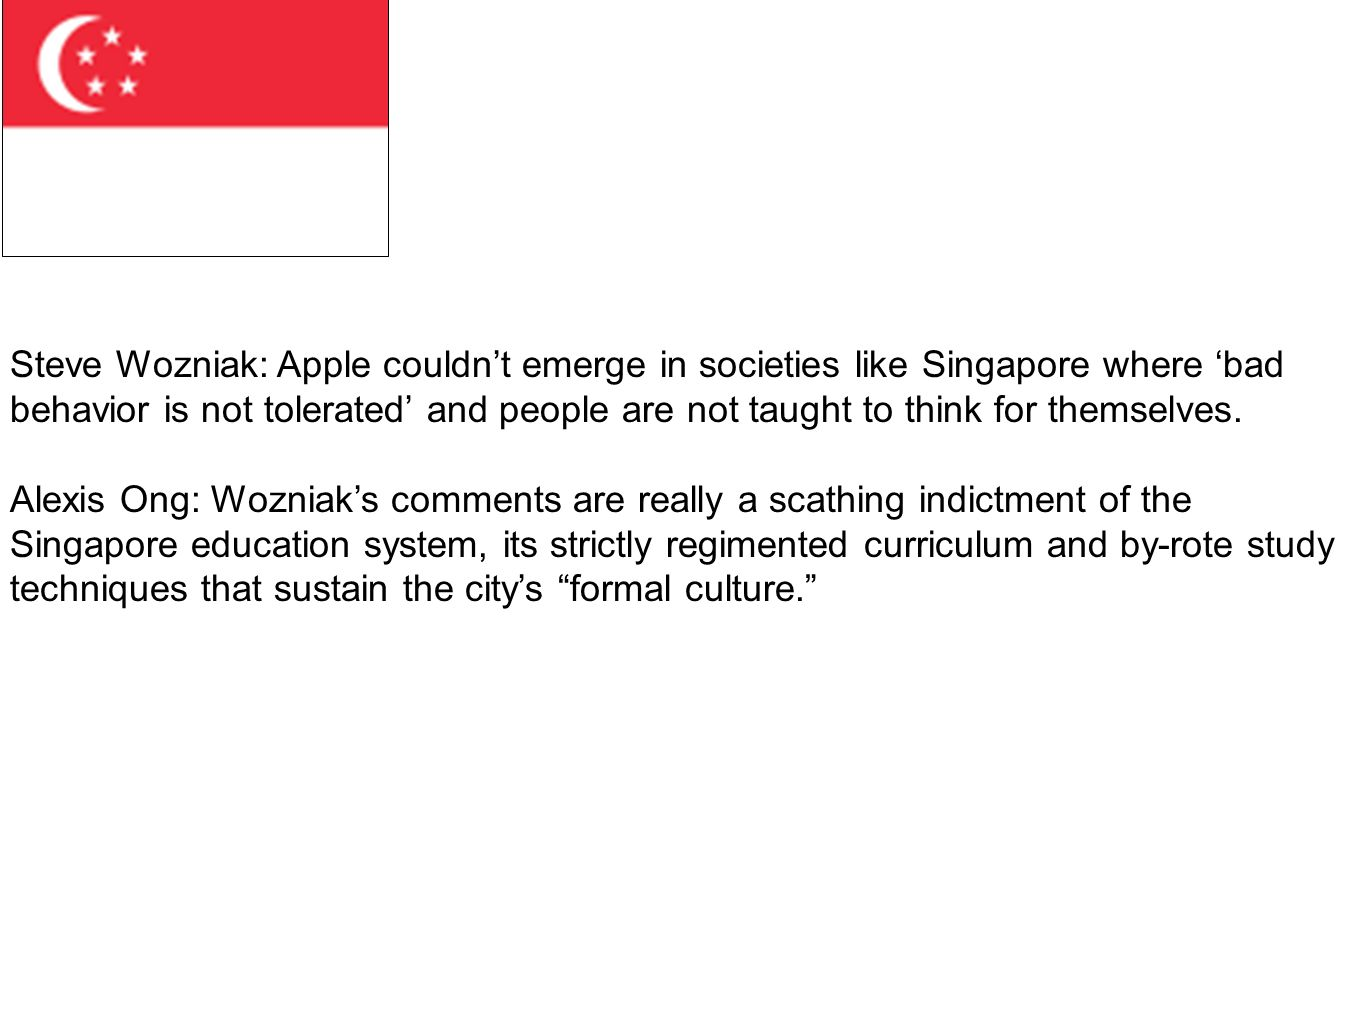 Steve Wozniak: Apple couldn't emerge in societies like Singapore where 'bad behavior is not tolerated' and people are not taught to think for themselves.